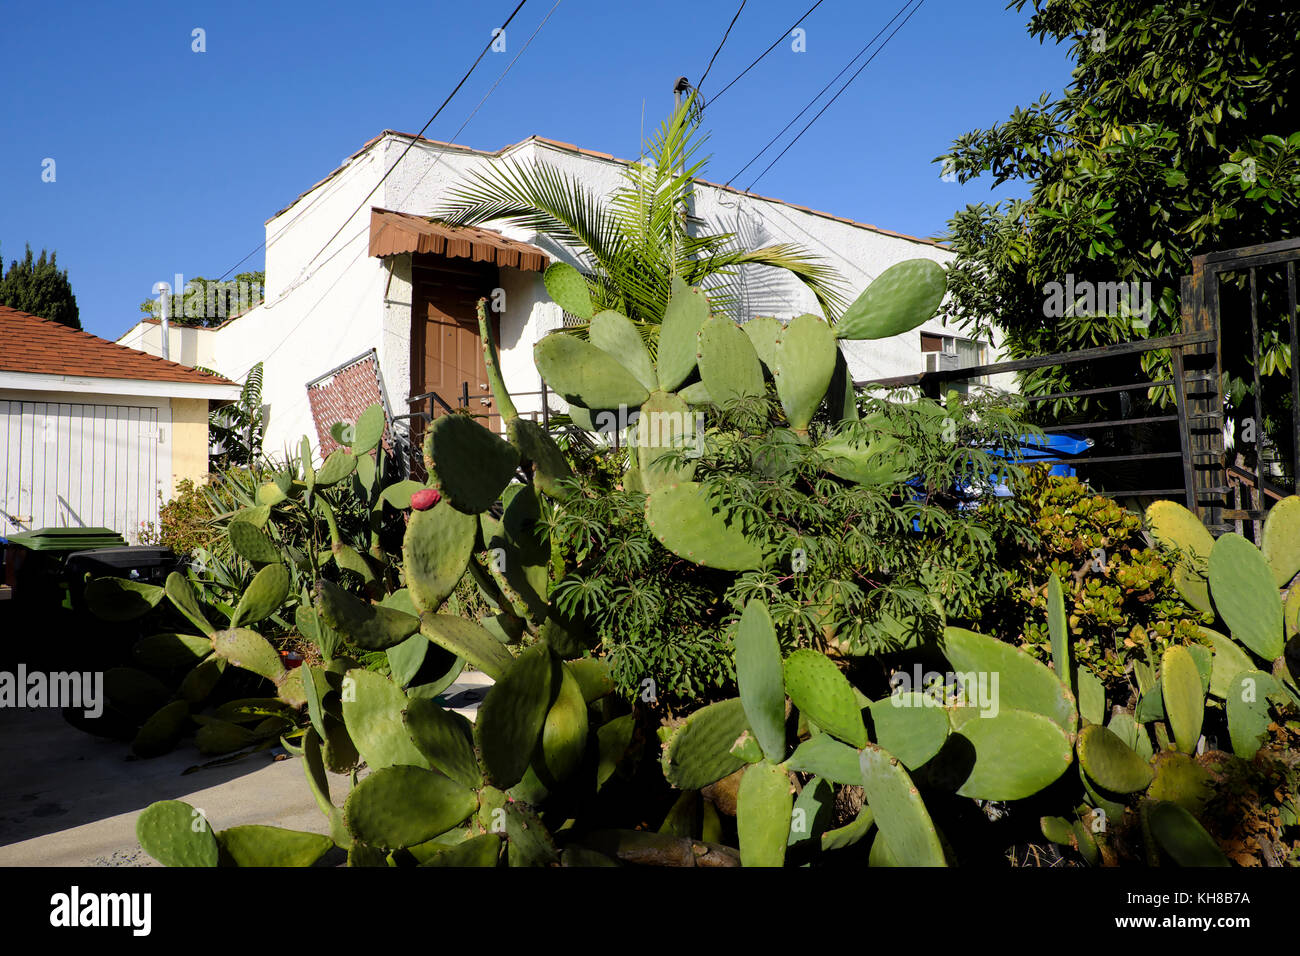 Nopal cactus plant growing outside a house in Los Feliz, Los Angeles, California USA  KATHY DEWITT - Stock Image